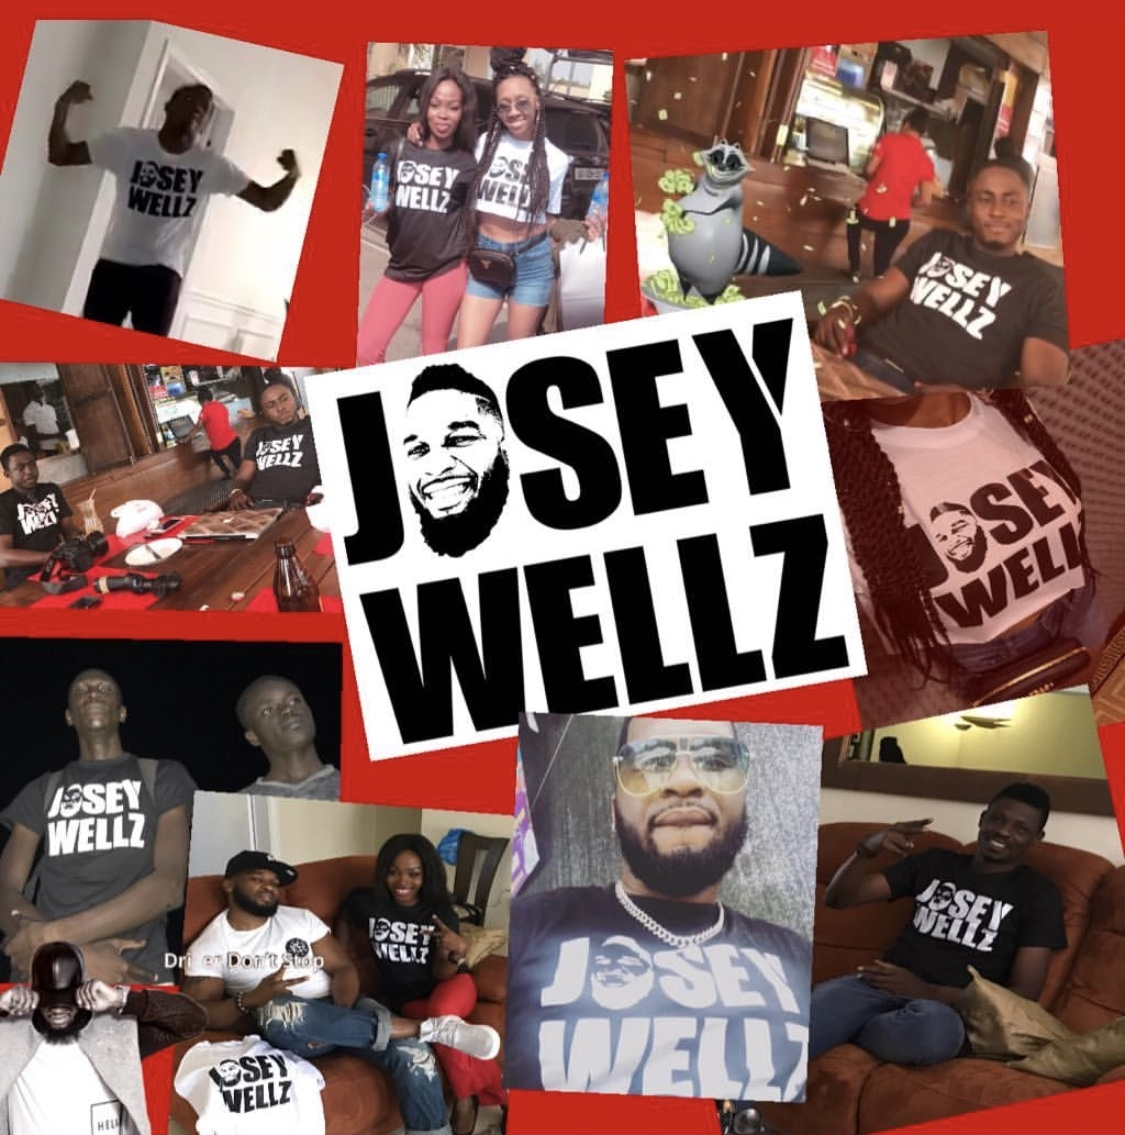 Josey Wellz